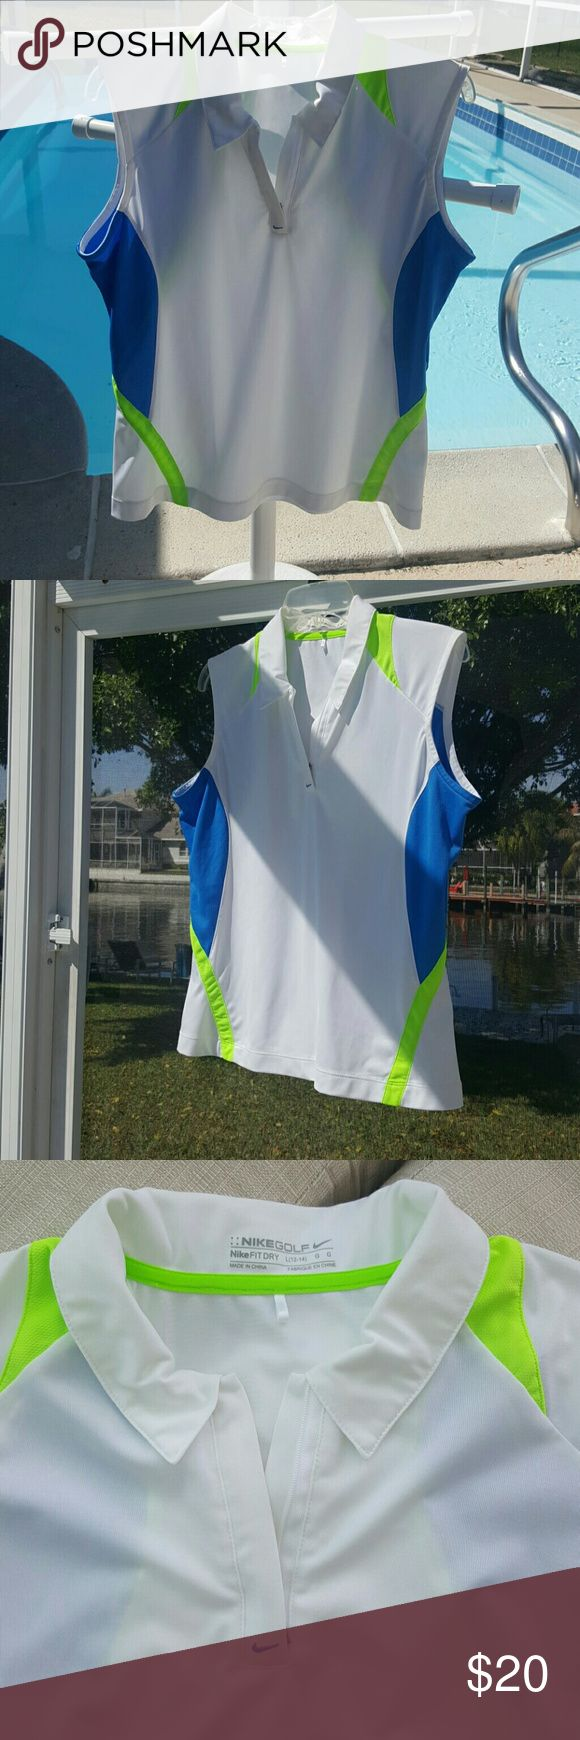 NIKE GOLF SHIRT L 12-14 Nike FIT DRY White Blue Nike Golf Shirt, size Large 12-14. Part of the NIKE FIT DRY COLLECTION. Great condition. I'm throwing in a great matching gold skirt by Tail Tec Golf, sz 10. If you do not want the skirt please let me know before I ship in the comments...please note the skirt has a thread coming loose on hem which will eventually unravel if not stitched or fixed..THEREFORE this listing is ONLY for the Nike Golf Shirt. The skirt is a throw in, toss it or recycle…